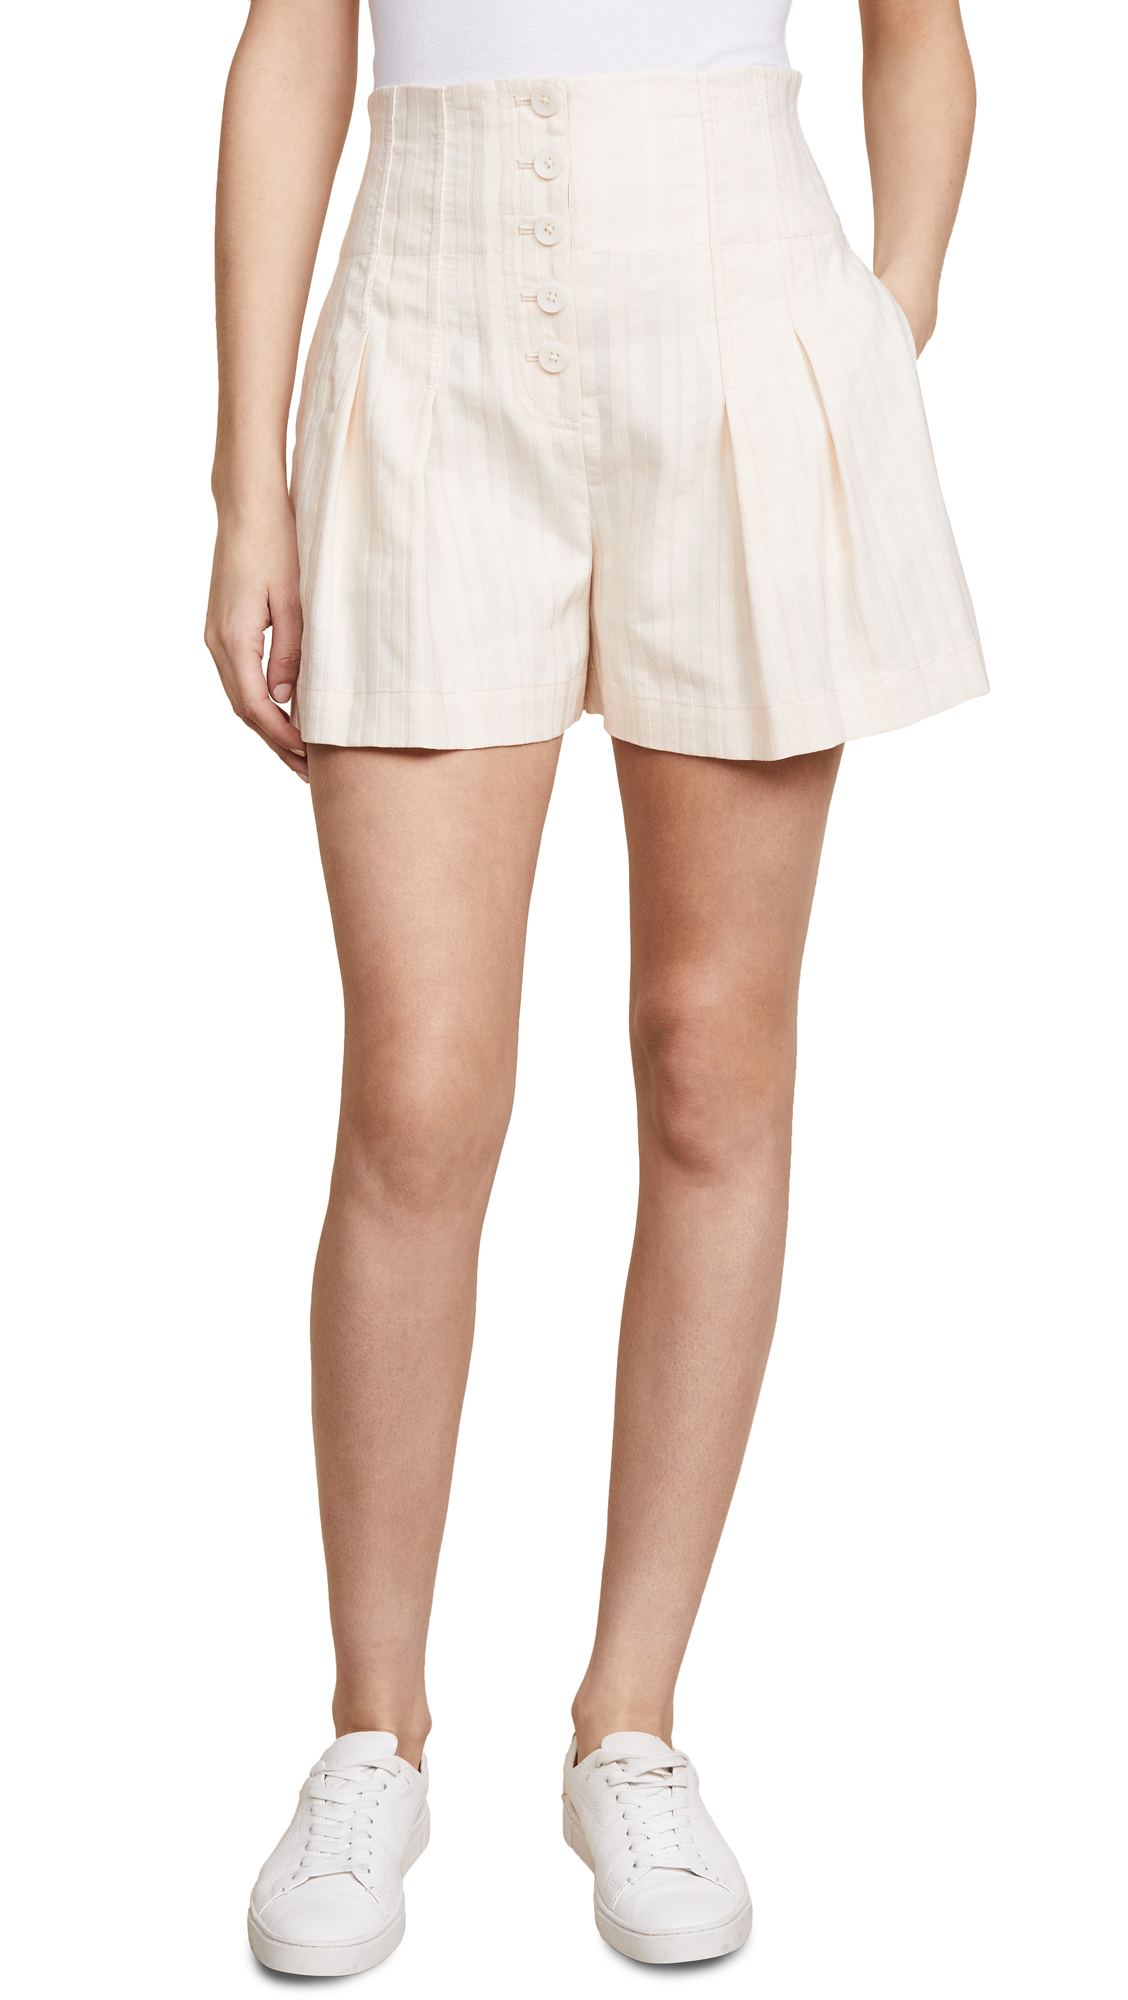 Rebecca Taylor Textured Stripe Shorts In Creme Brulee